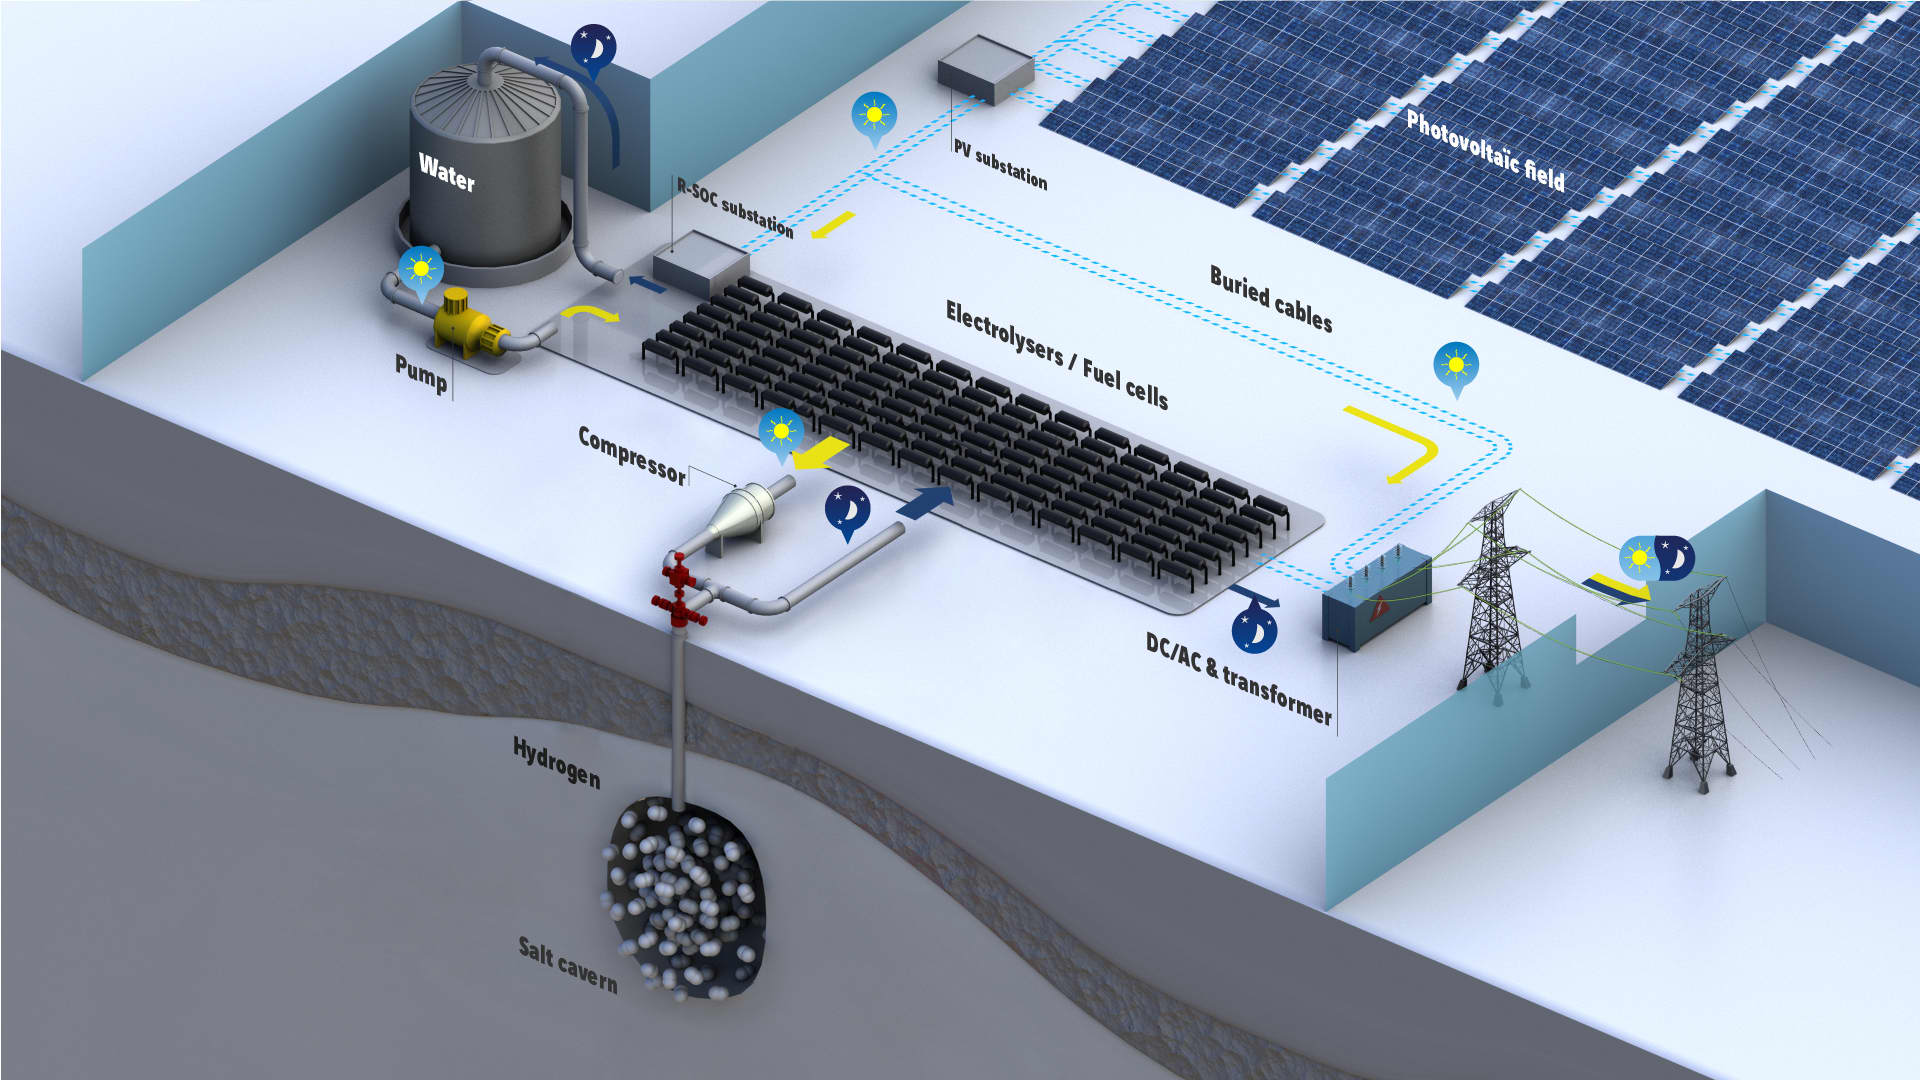 Hydrogen can be produced with renewable energy from sources like solar panels and then stored under the ground in salt caverns for future use.